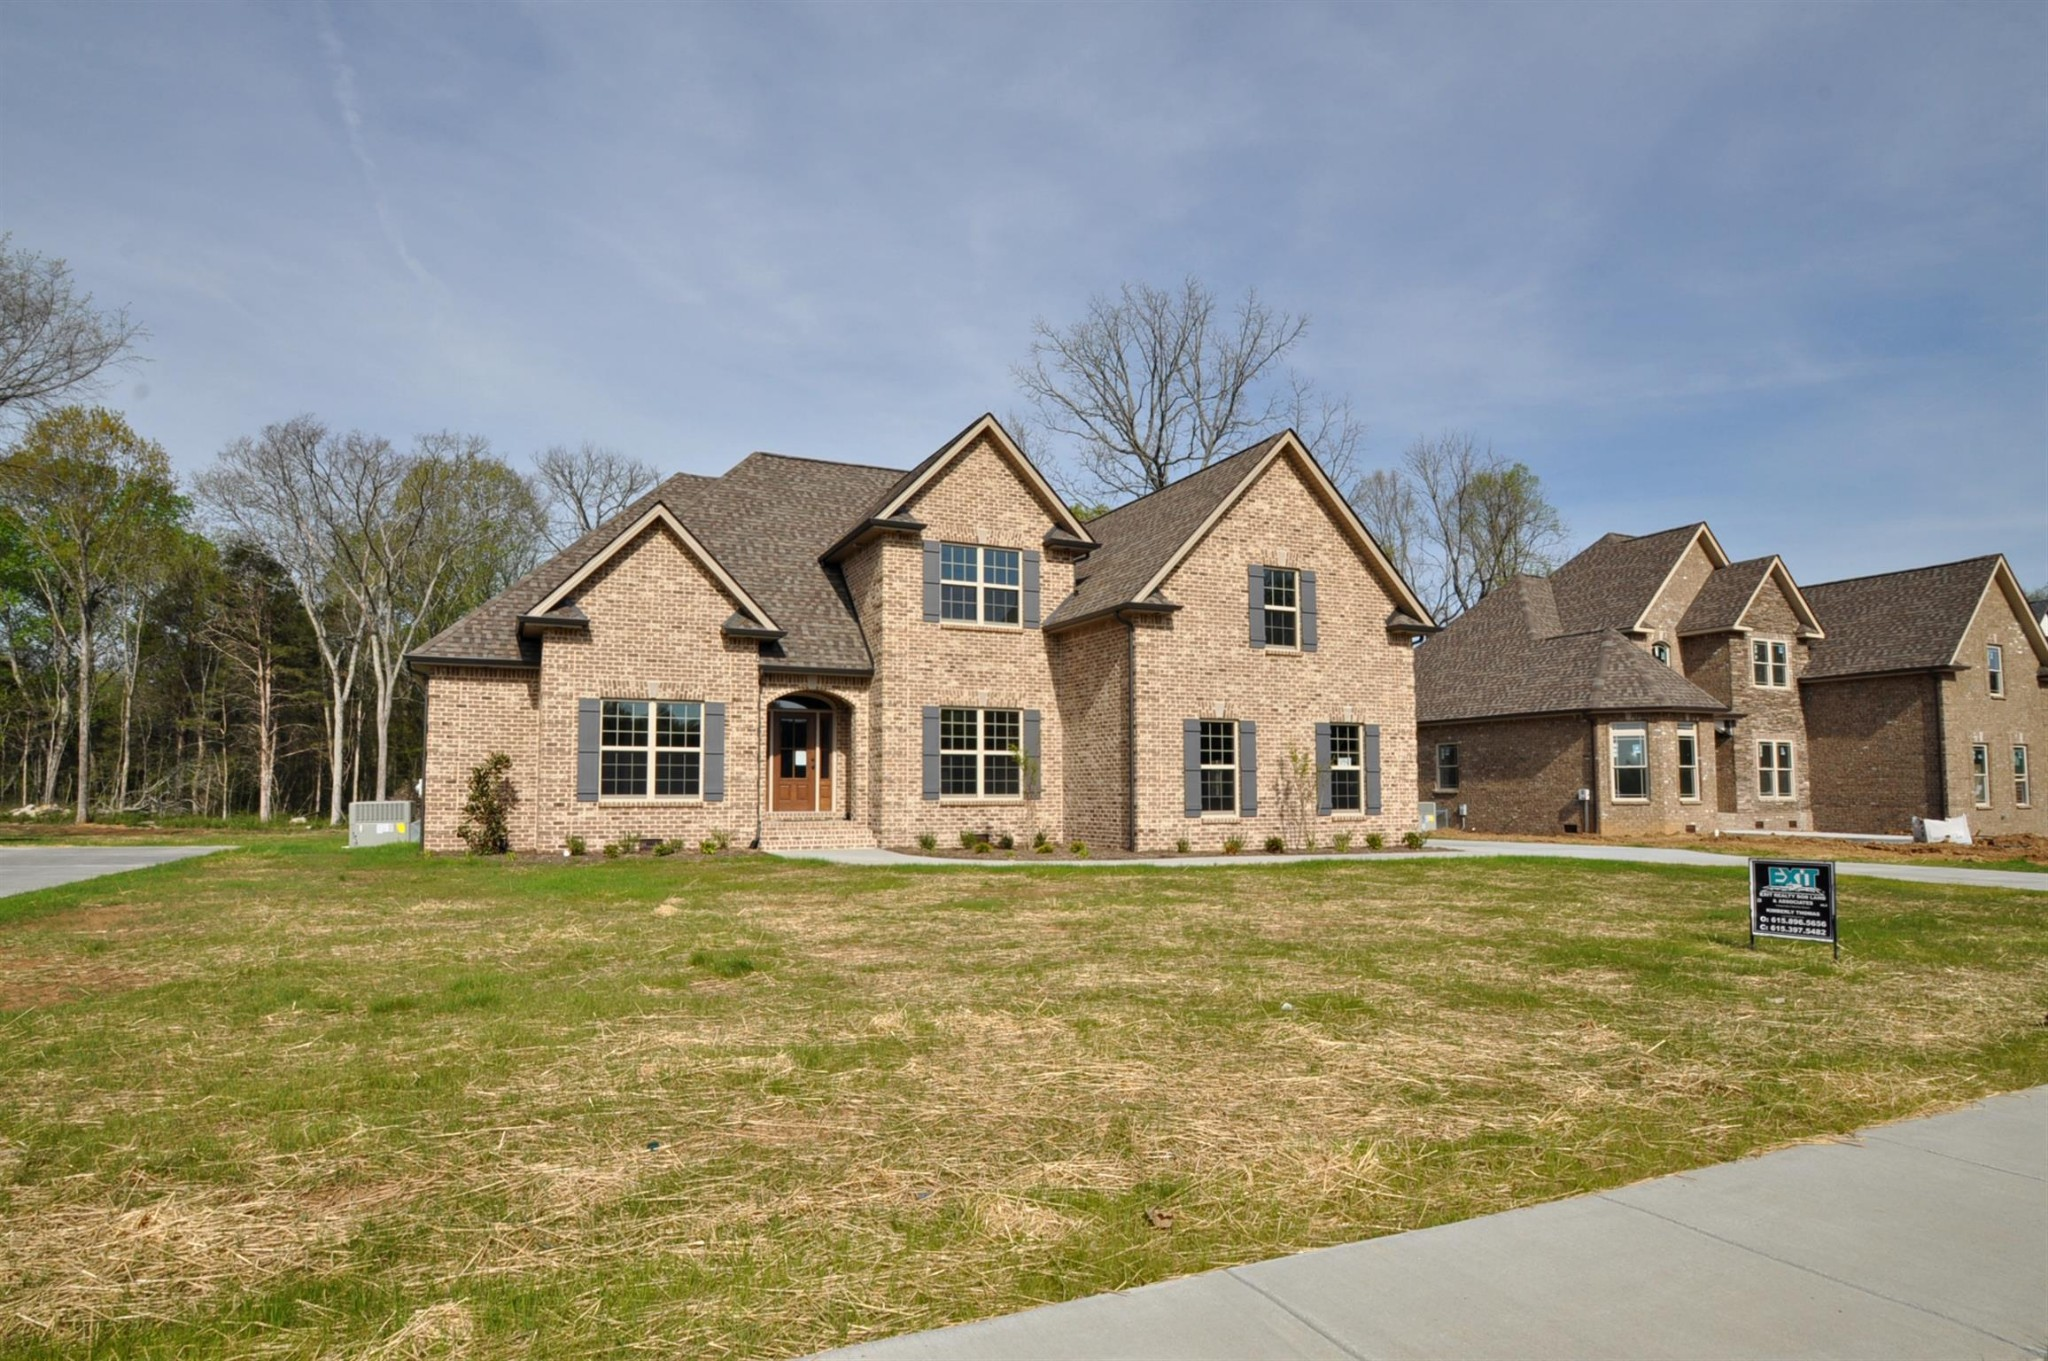 1509 Addi Jo Court Property Photo - Christiana, TN real estate listing